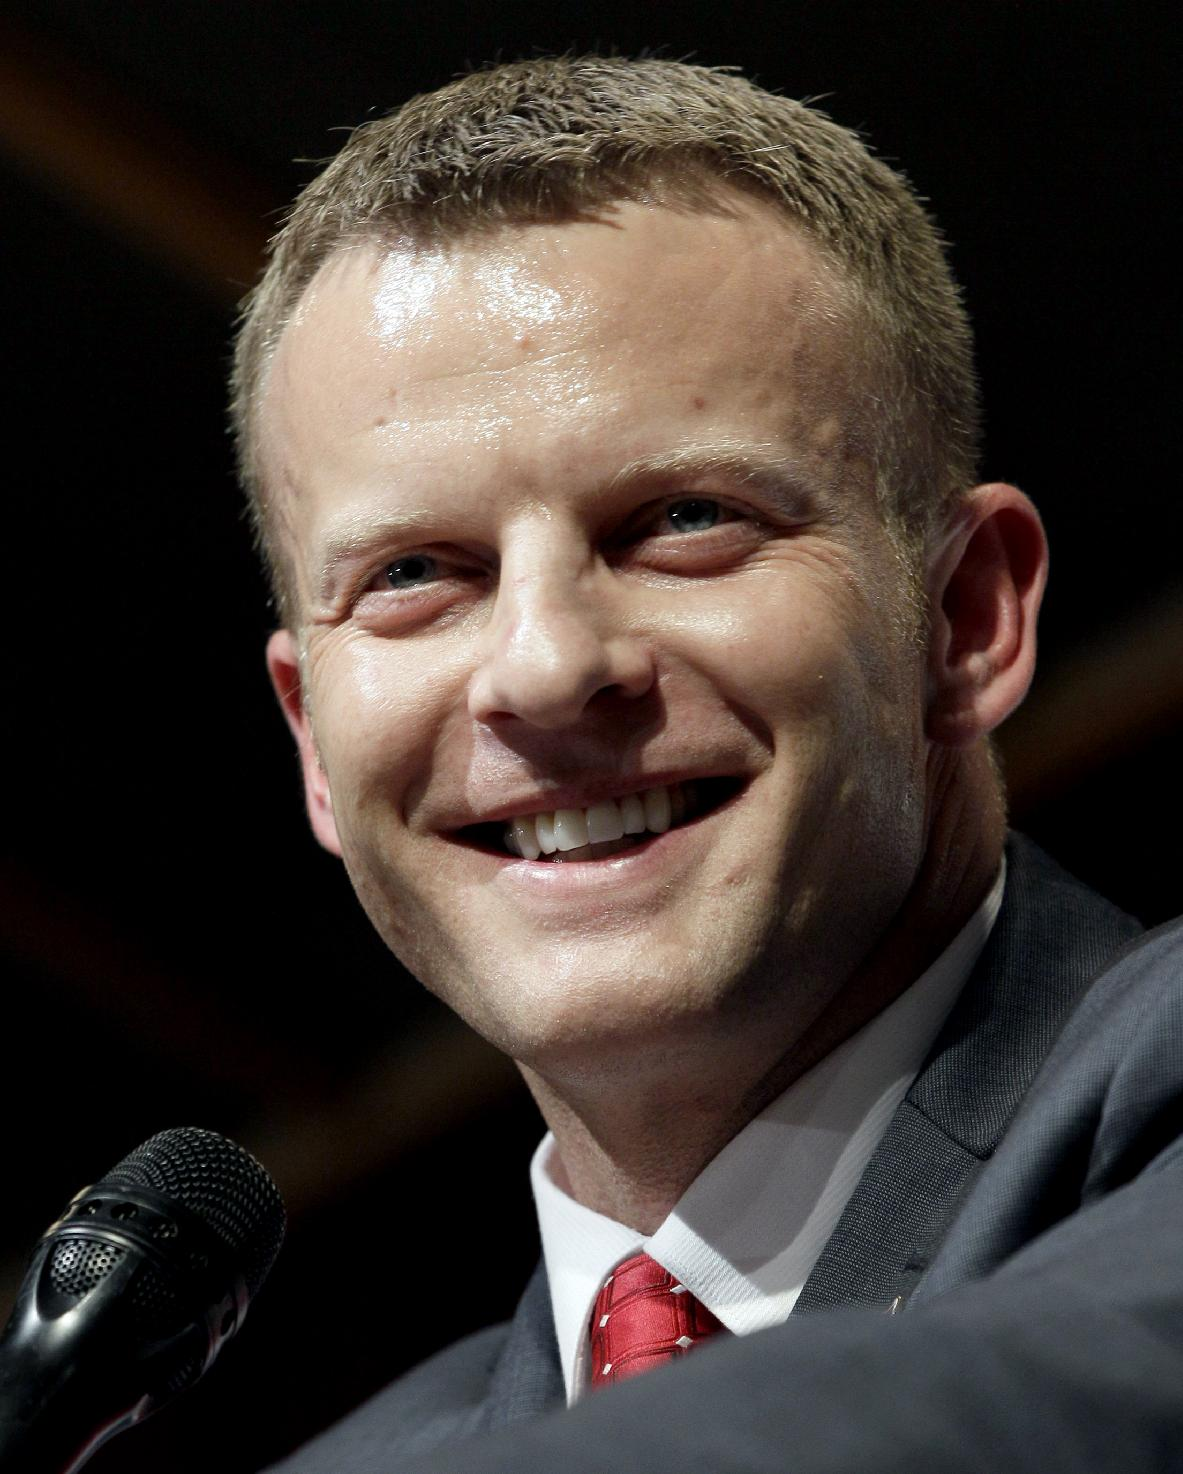 In this Dec. 12, 2012 file photo, Arkansas State head coach Bryan Harsin speaks during an NCAA college football news conference in Jonesboro, Ark. A person familiar with the decision tells The Associated Press that Boise State has hired  Harsin as its next coach. The person spoke on condition of anonymity because the move had not become official